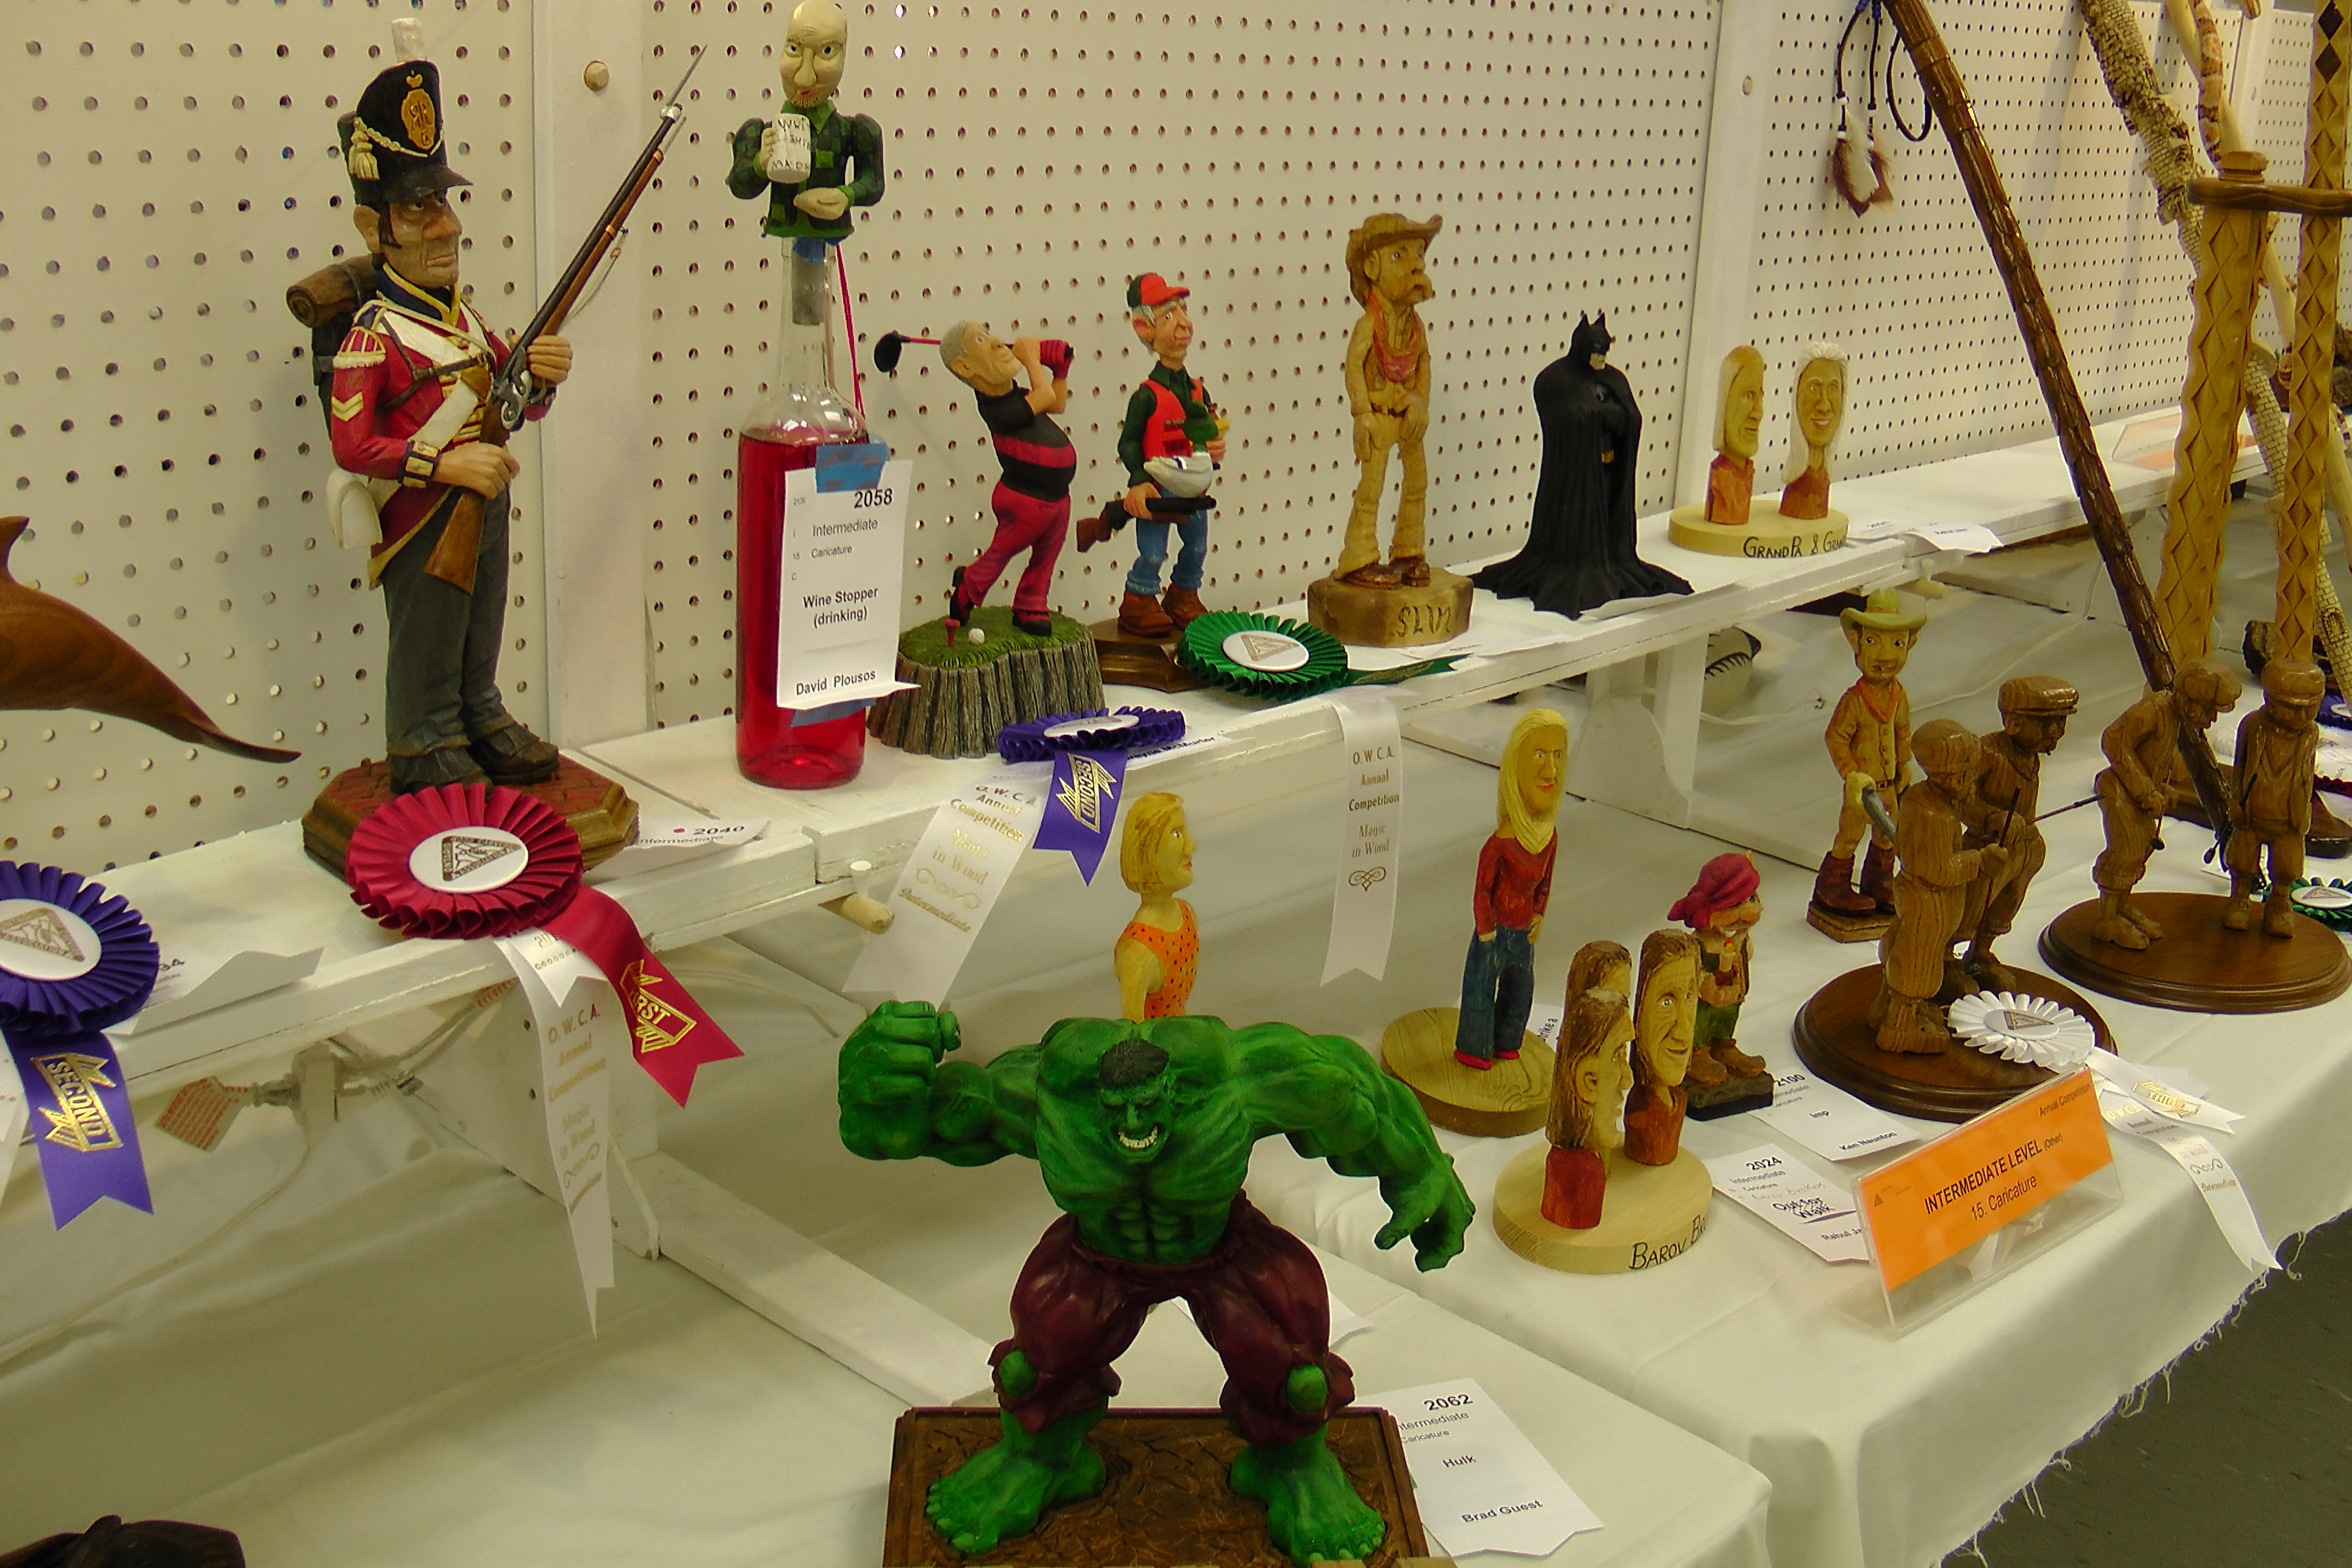 wood carving shows